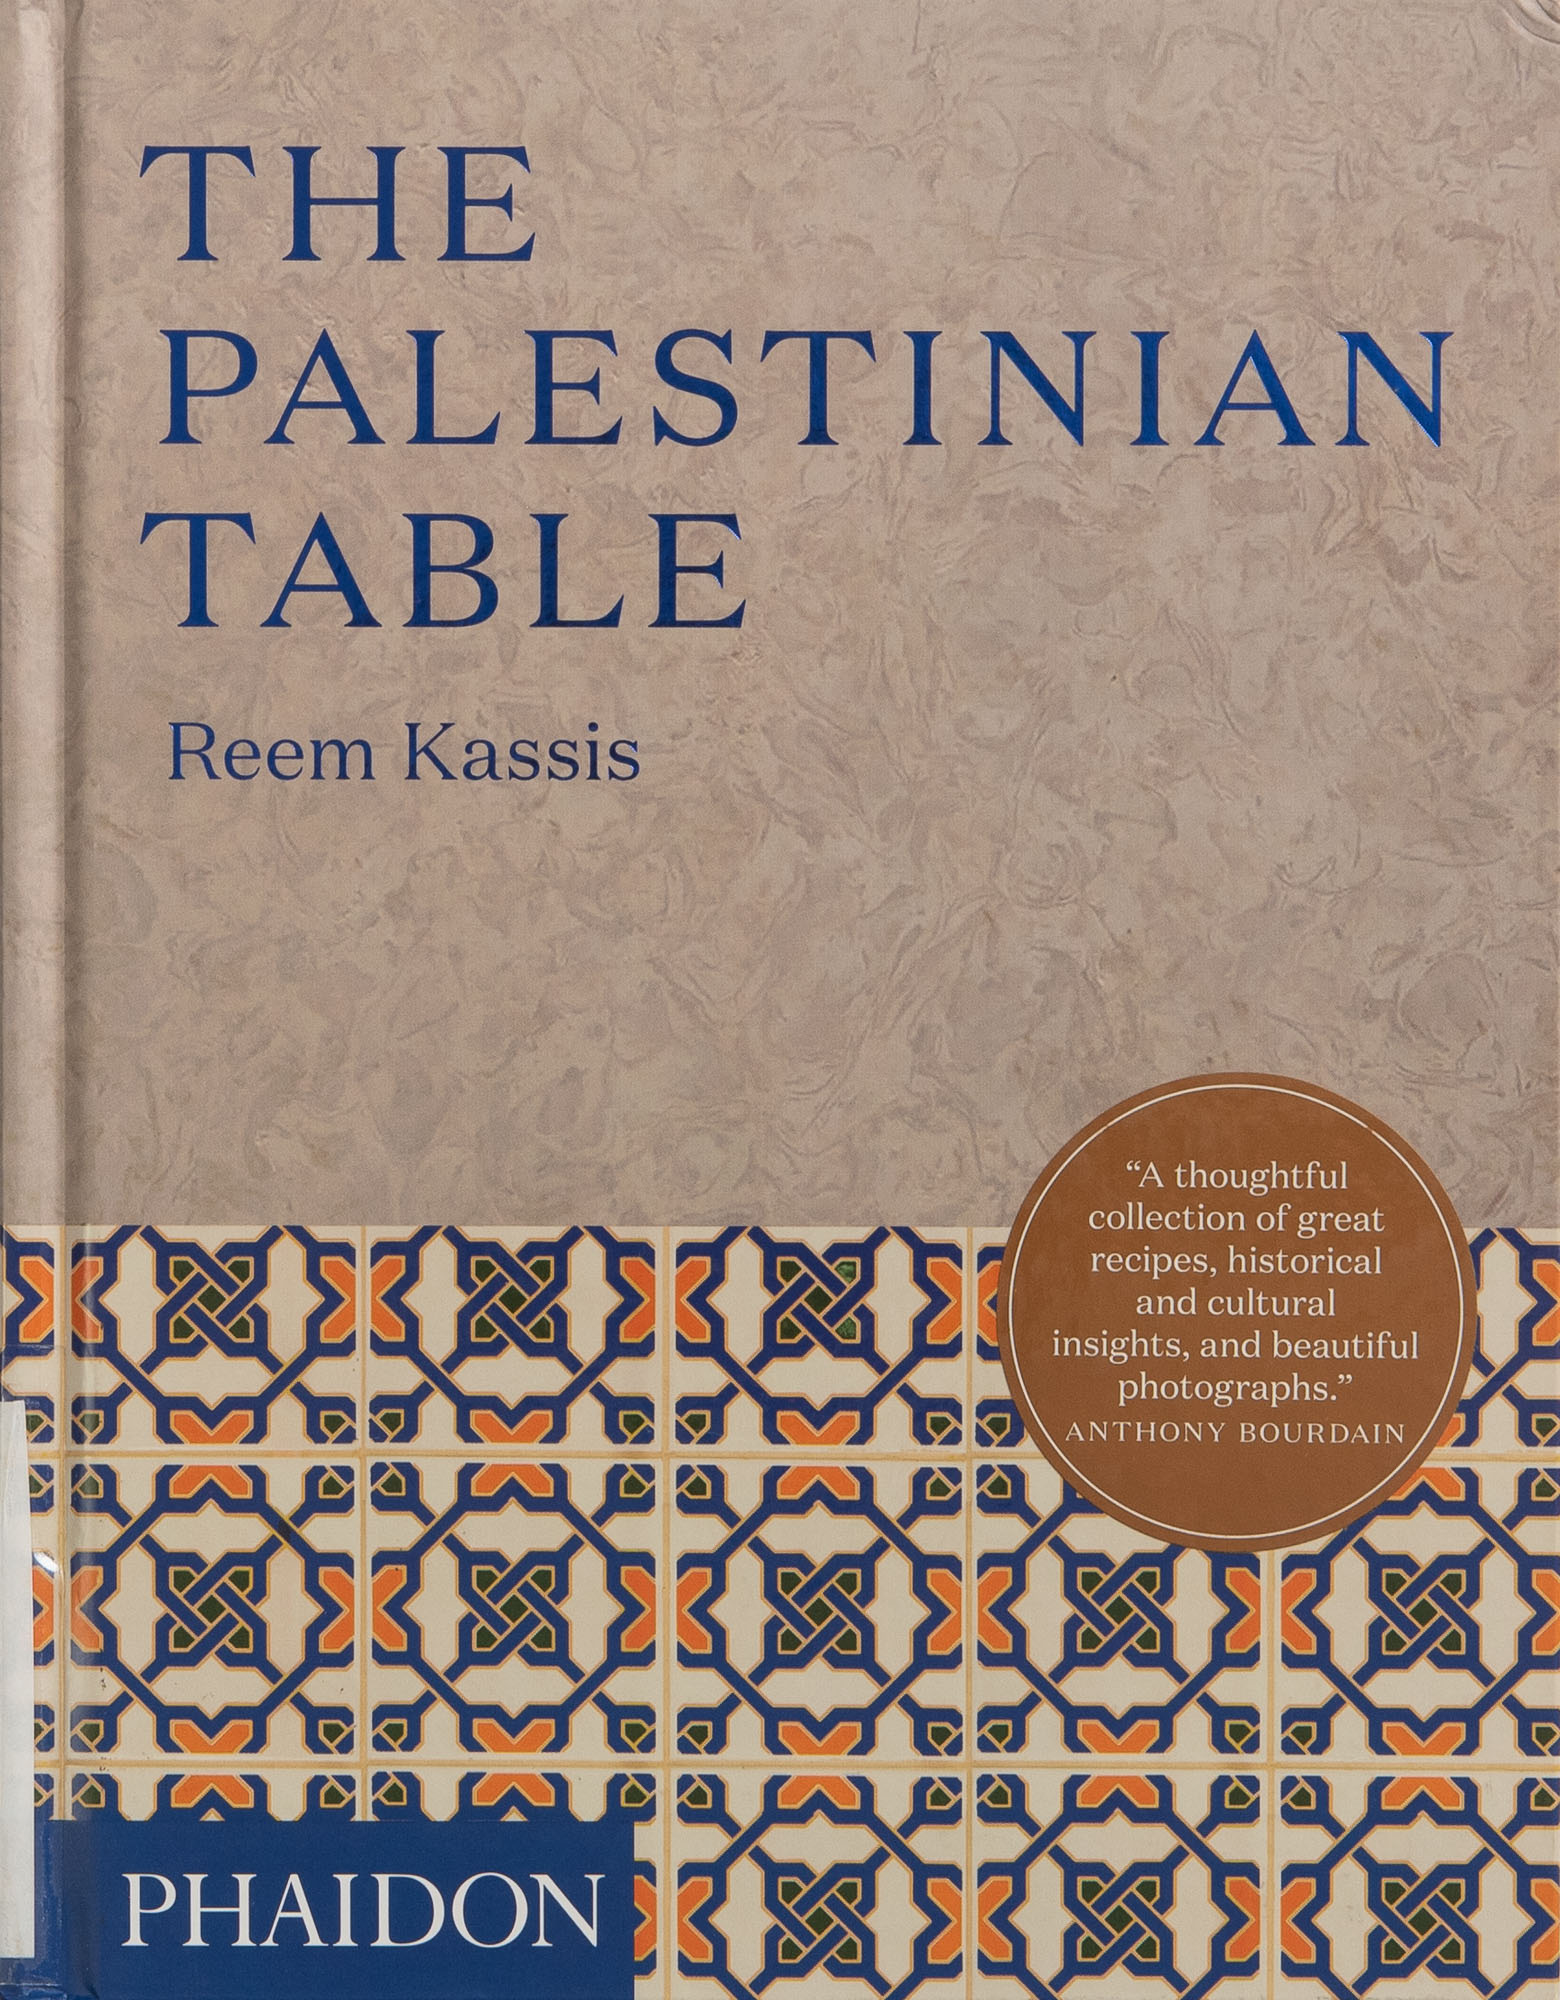 The cover of the cookbook The Palestinian Table by Reem Kassis